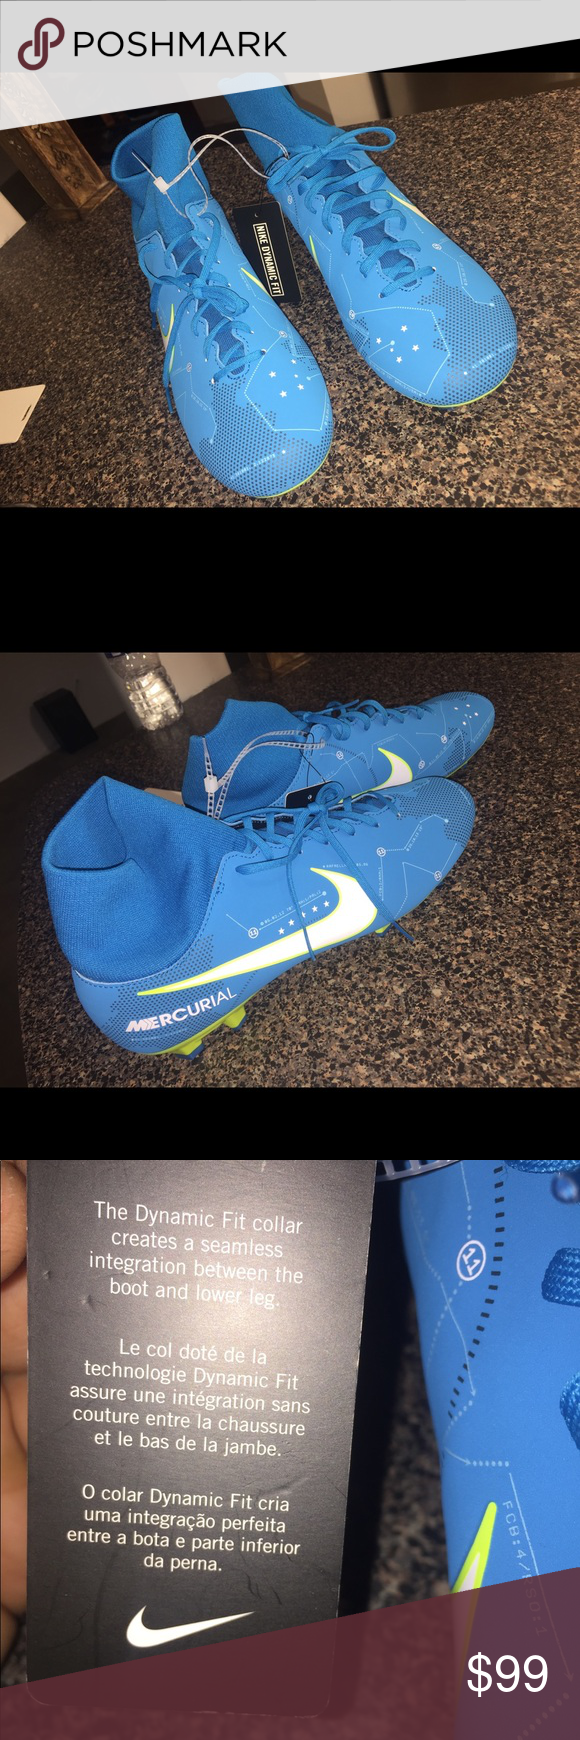 8759ce470f7a Nike Mercurials Soccer Cleat New Sz 9 Hello 👋 these shoes are new without original  box We hope you enjoy